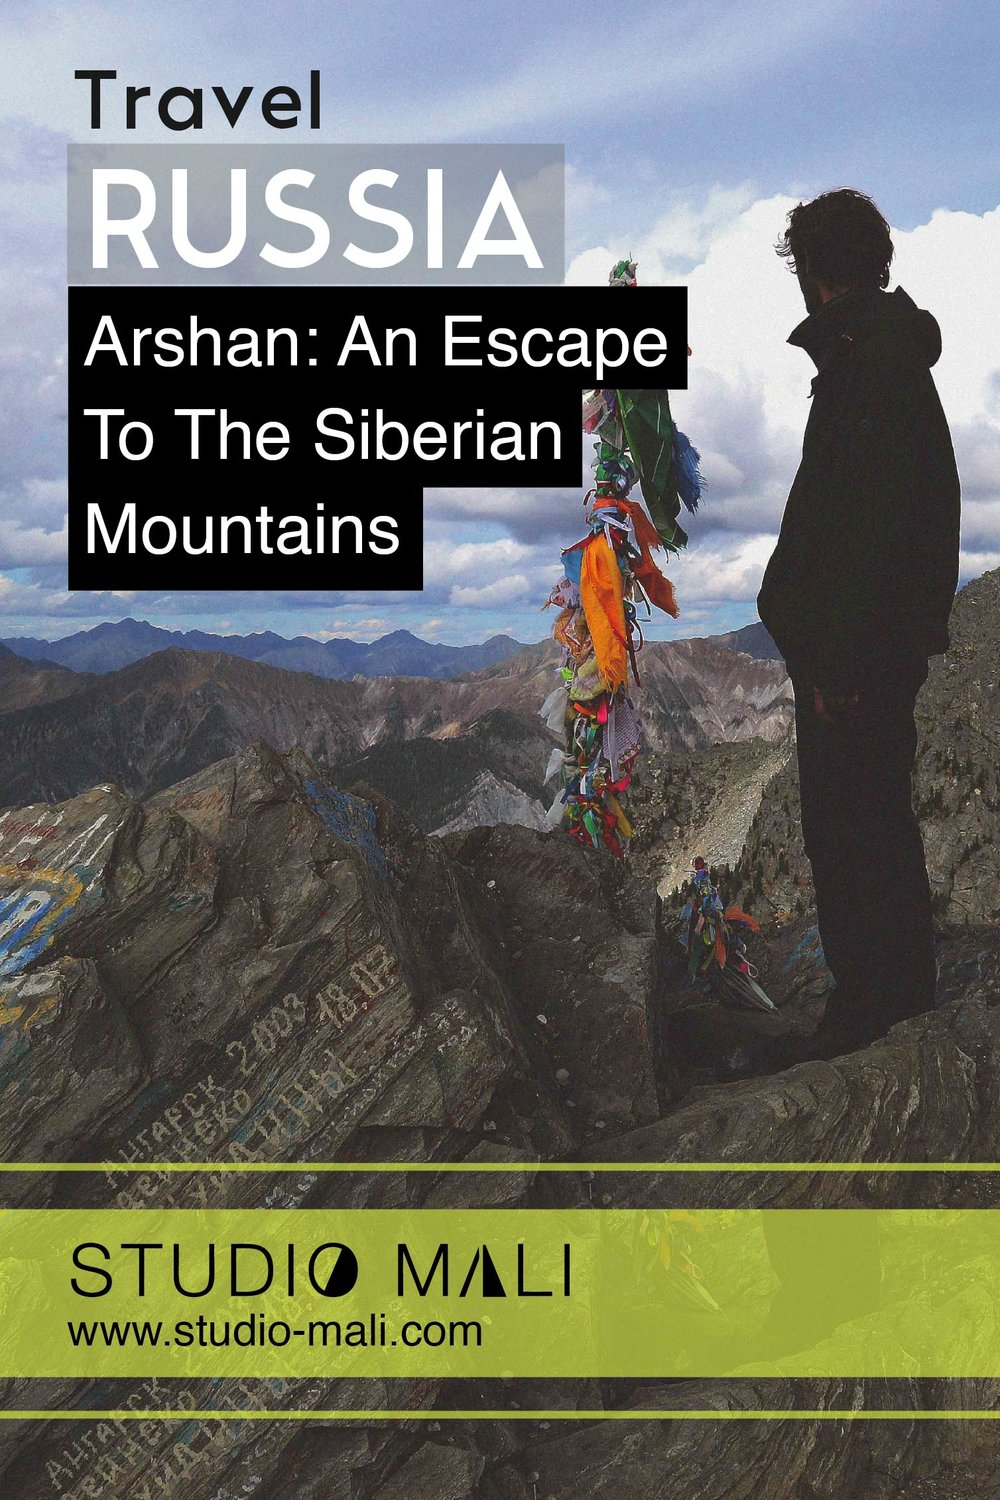 Arshan: An Escape To The Siberian Mountains, by Studio Mali